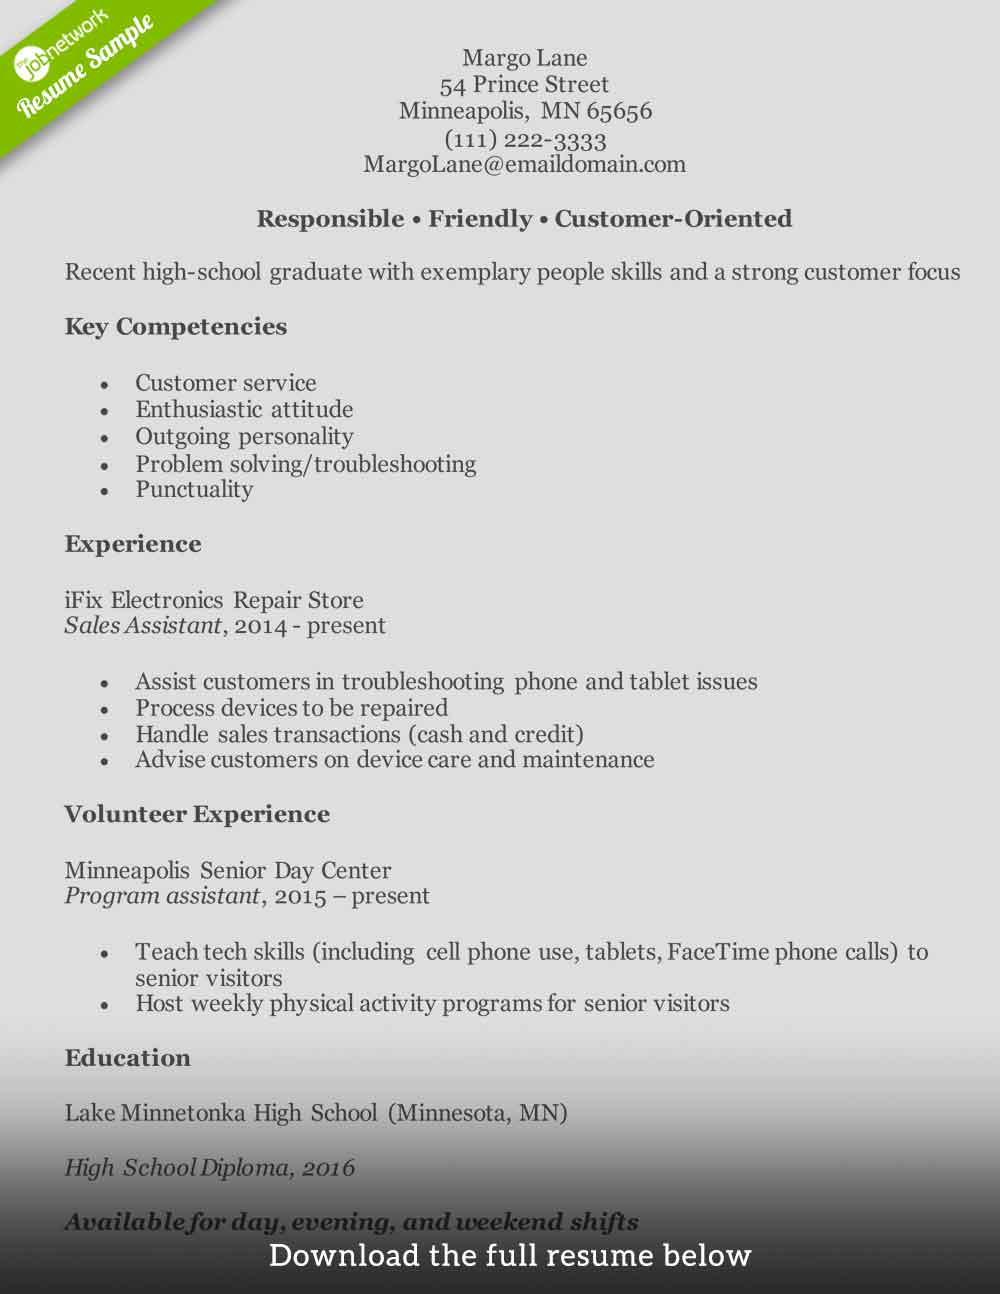 customer service resume to write the perfect one examples attributes entry level1 level Resume Customer Service Attributes Resume